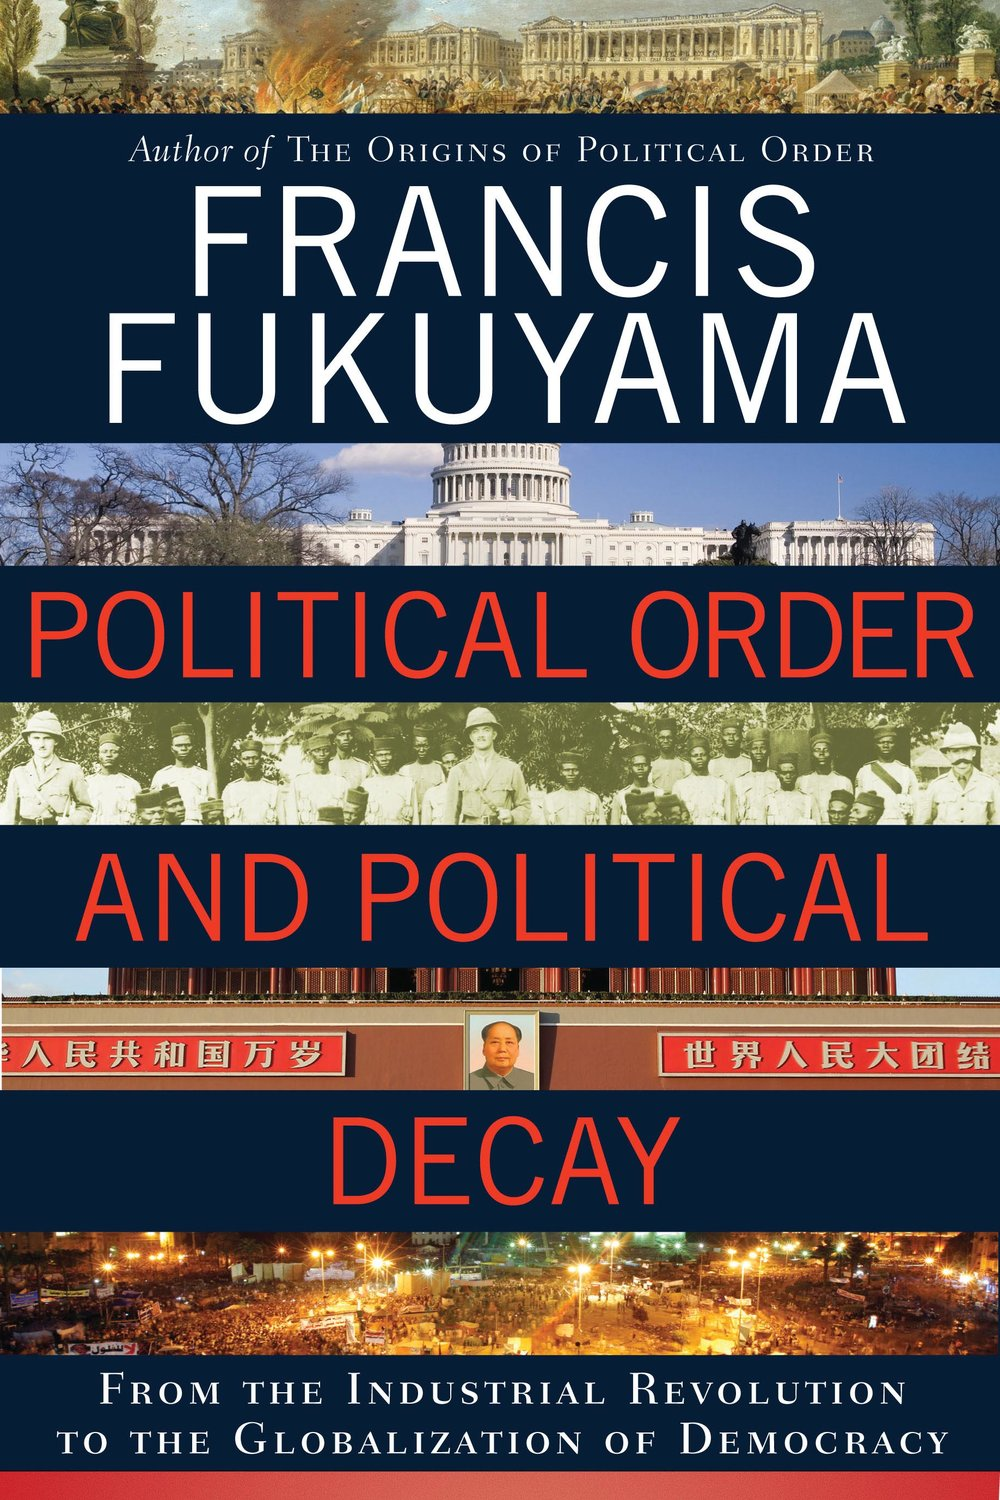 Francis Fukuyama • Political order and political decay: From the industrial revolution to the globalization of democracy • Farrar, Strauss and Giroux, 2014.